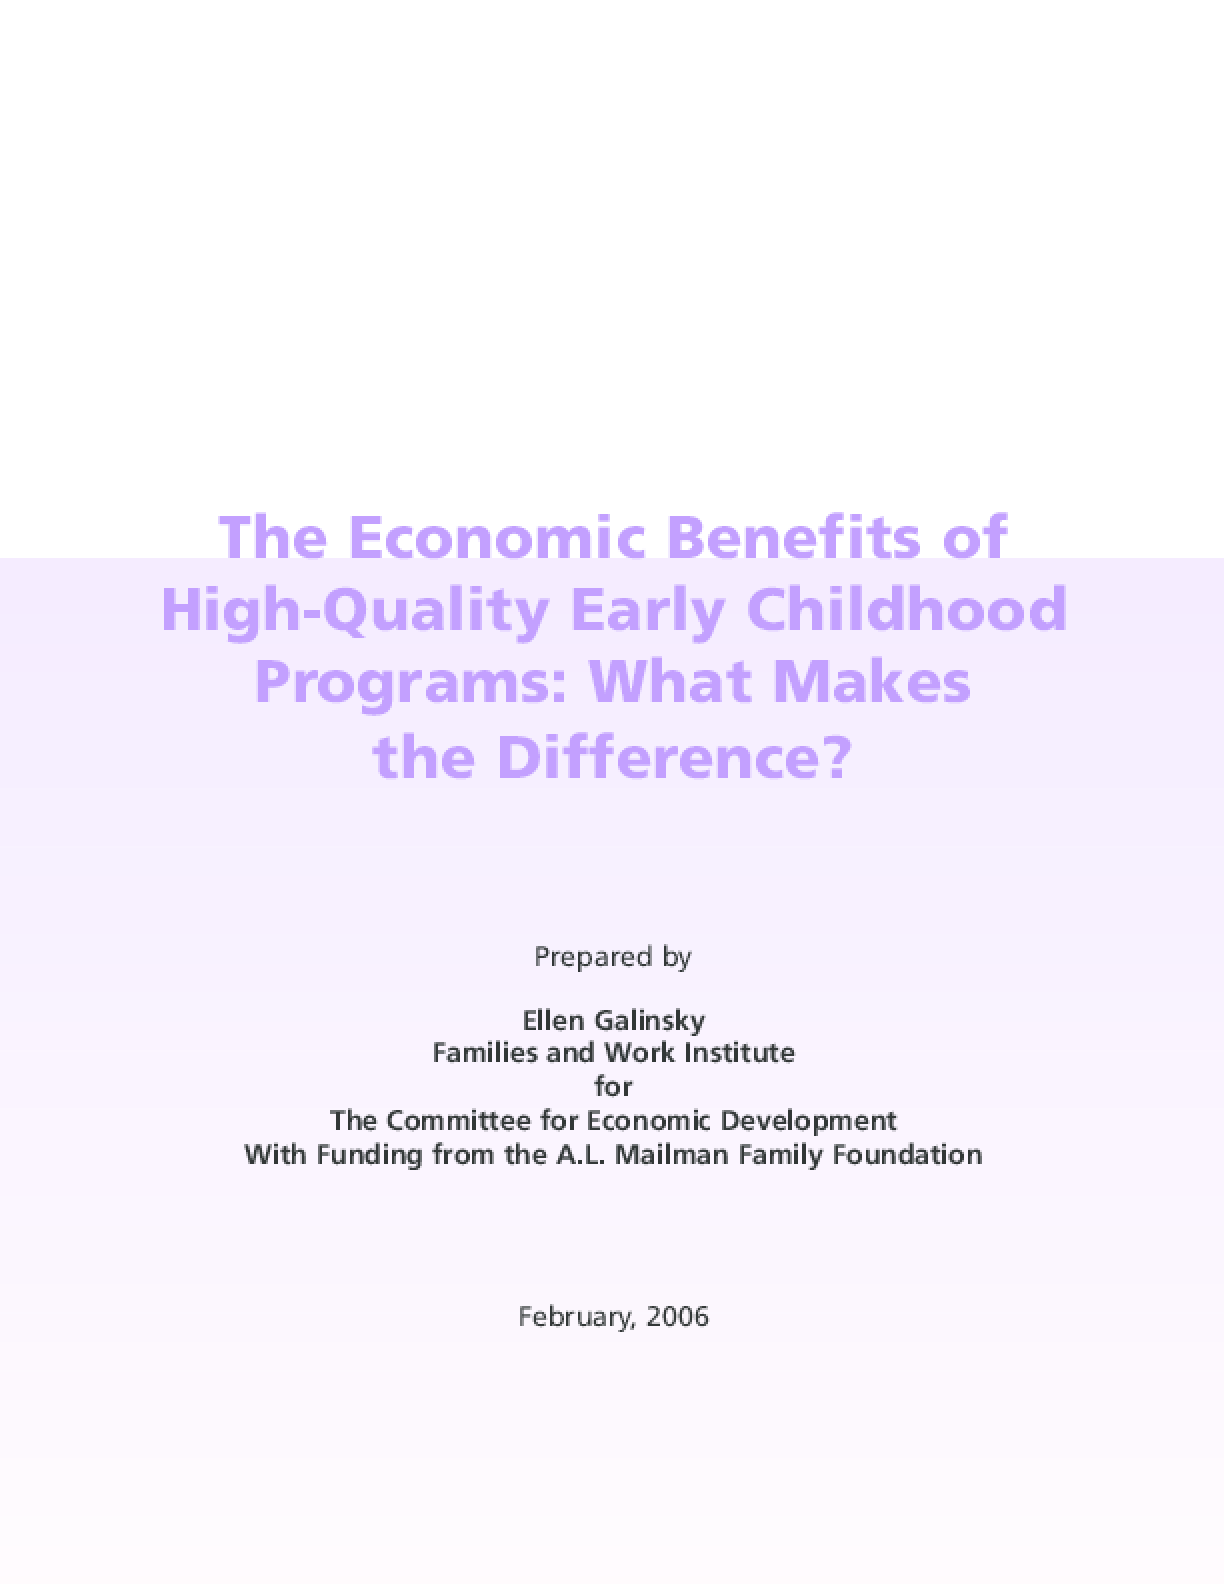 The Economic Benefits of High-Quality Early Childhood Programs: What Makes the Difference?